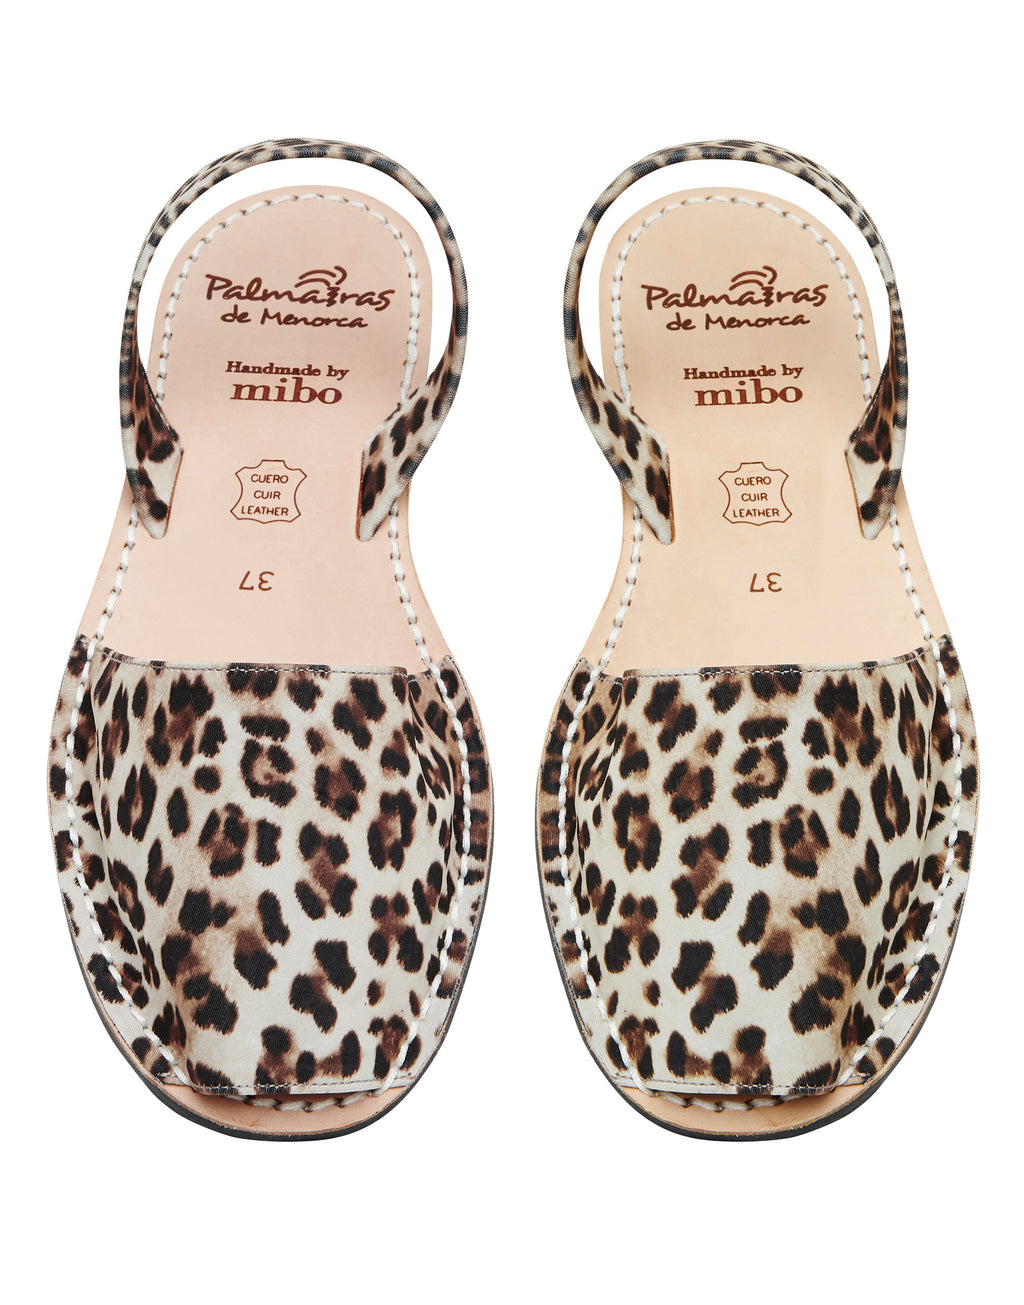 Leopard Print Avarcas Sandals Australia real leather Palmairas Menorcan Sandals handmade comfy sandals wide feet